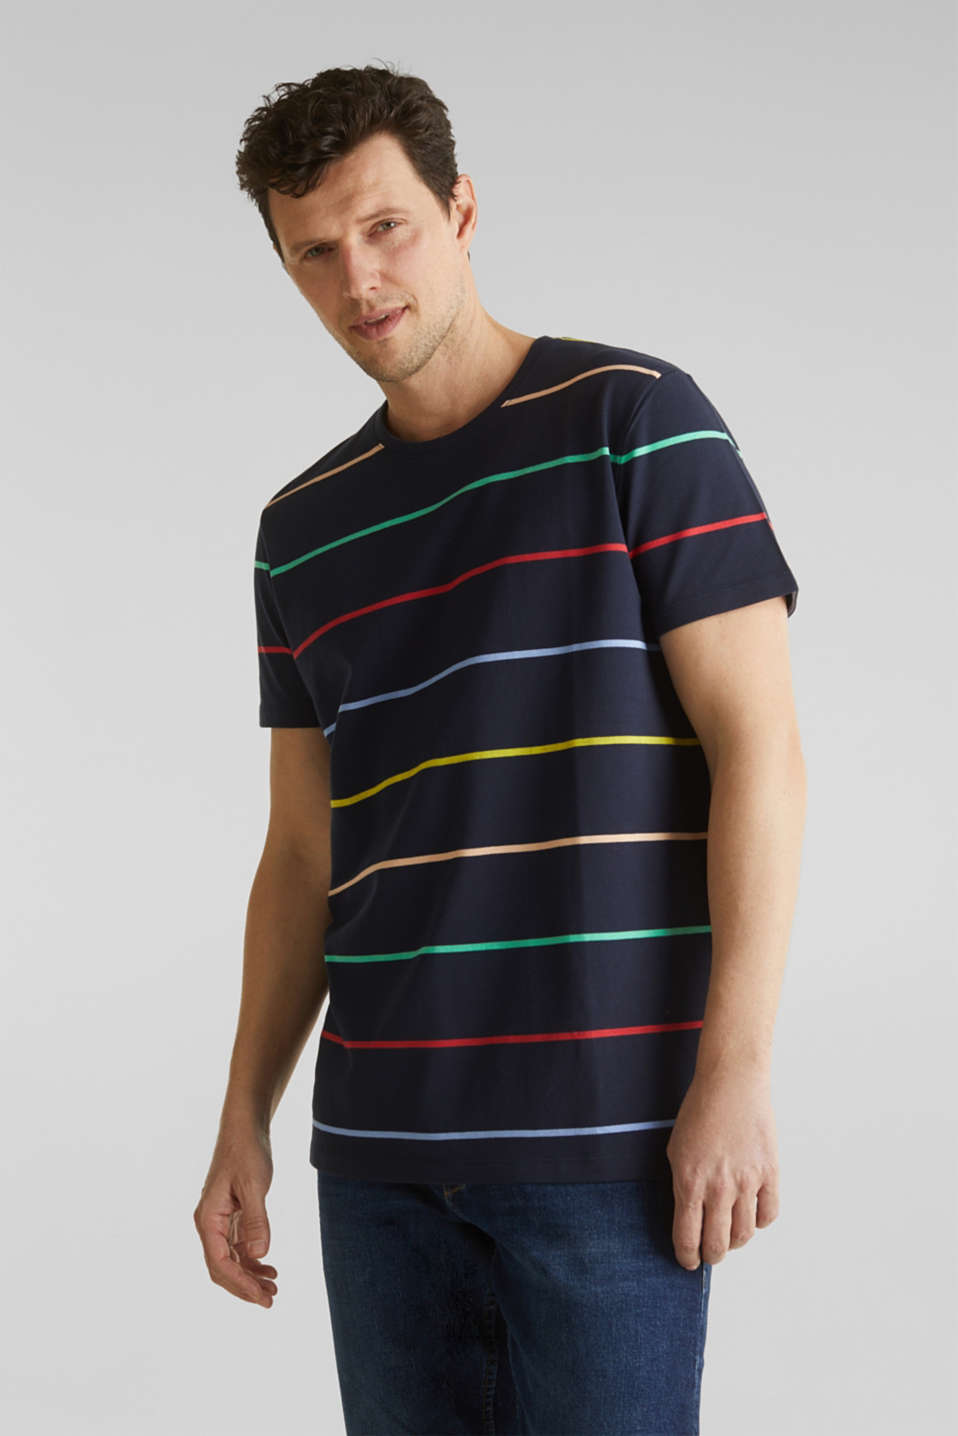 Esprit - Striped piqué T-shirt, 100% cotton